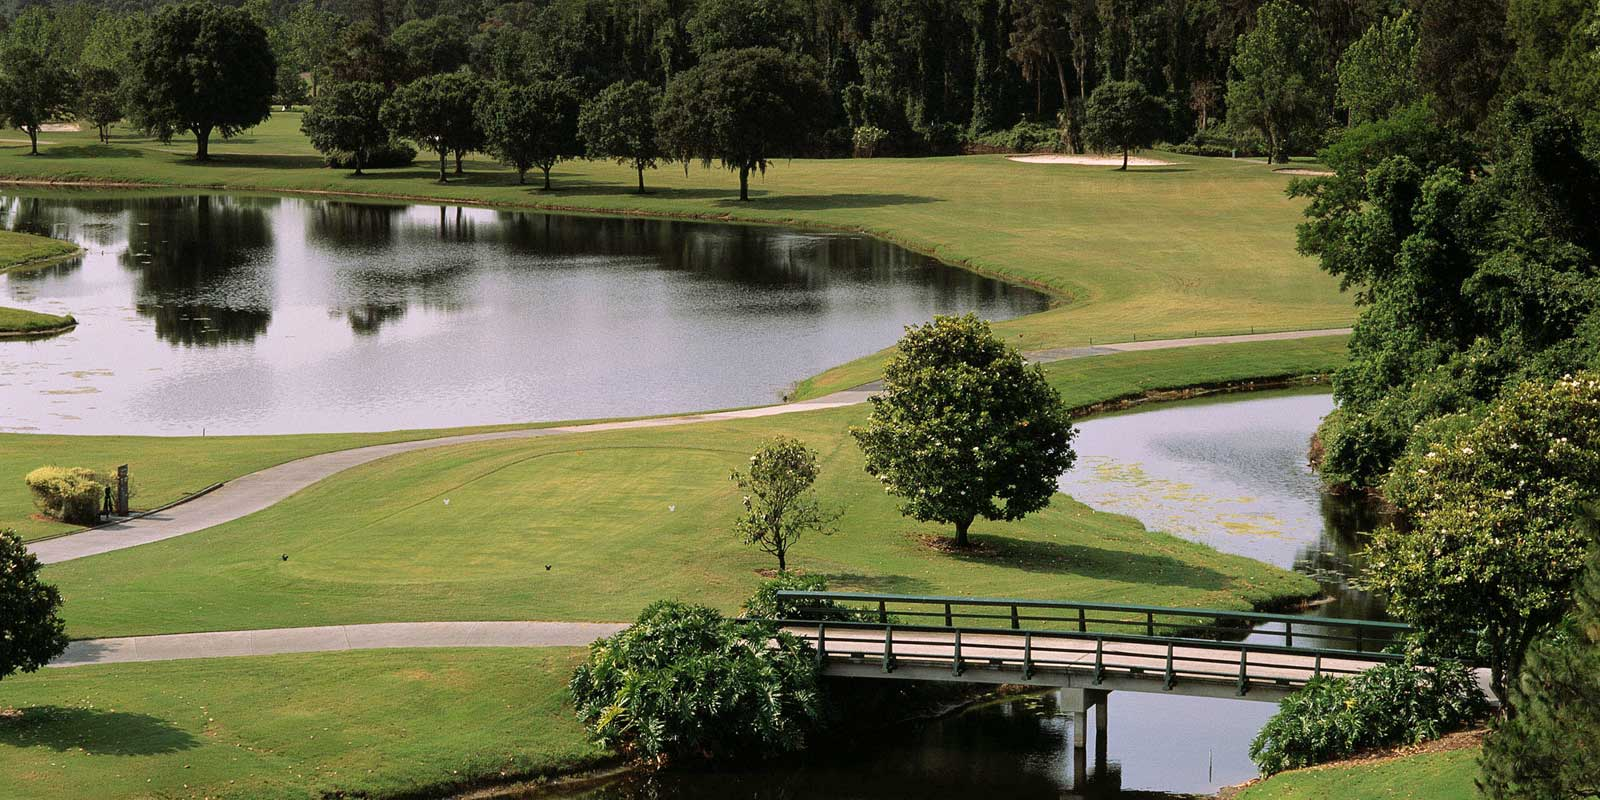 Play golf at one of Disney World's 3 golf courses, such as Magnolia Golf Course.